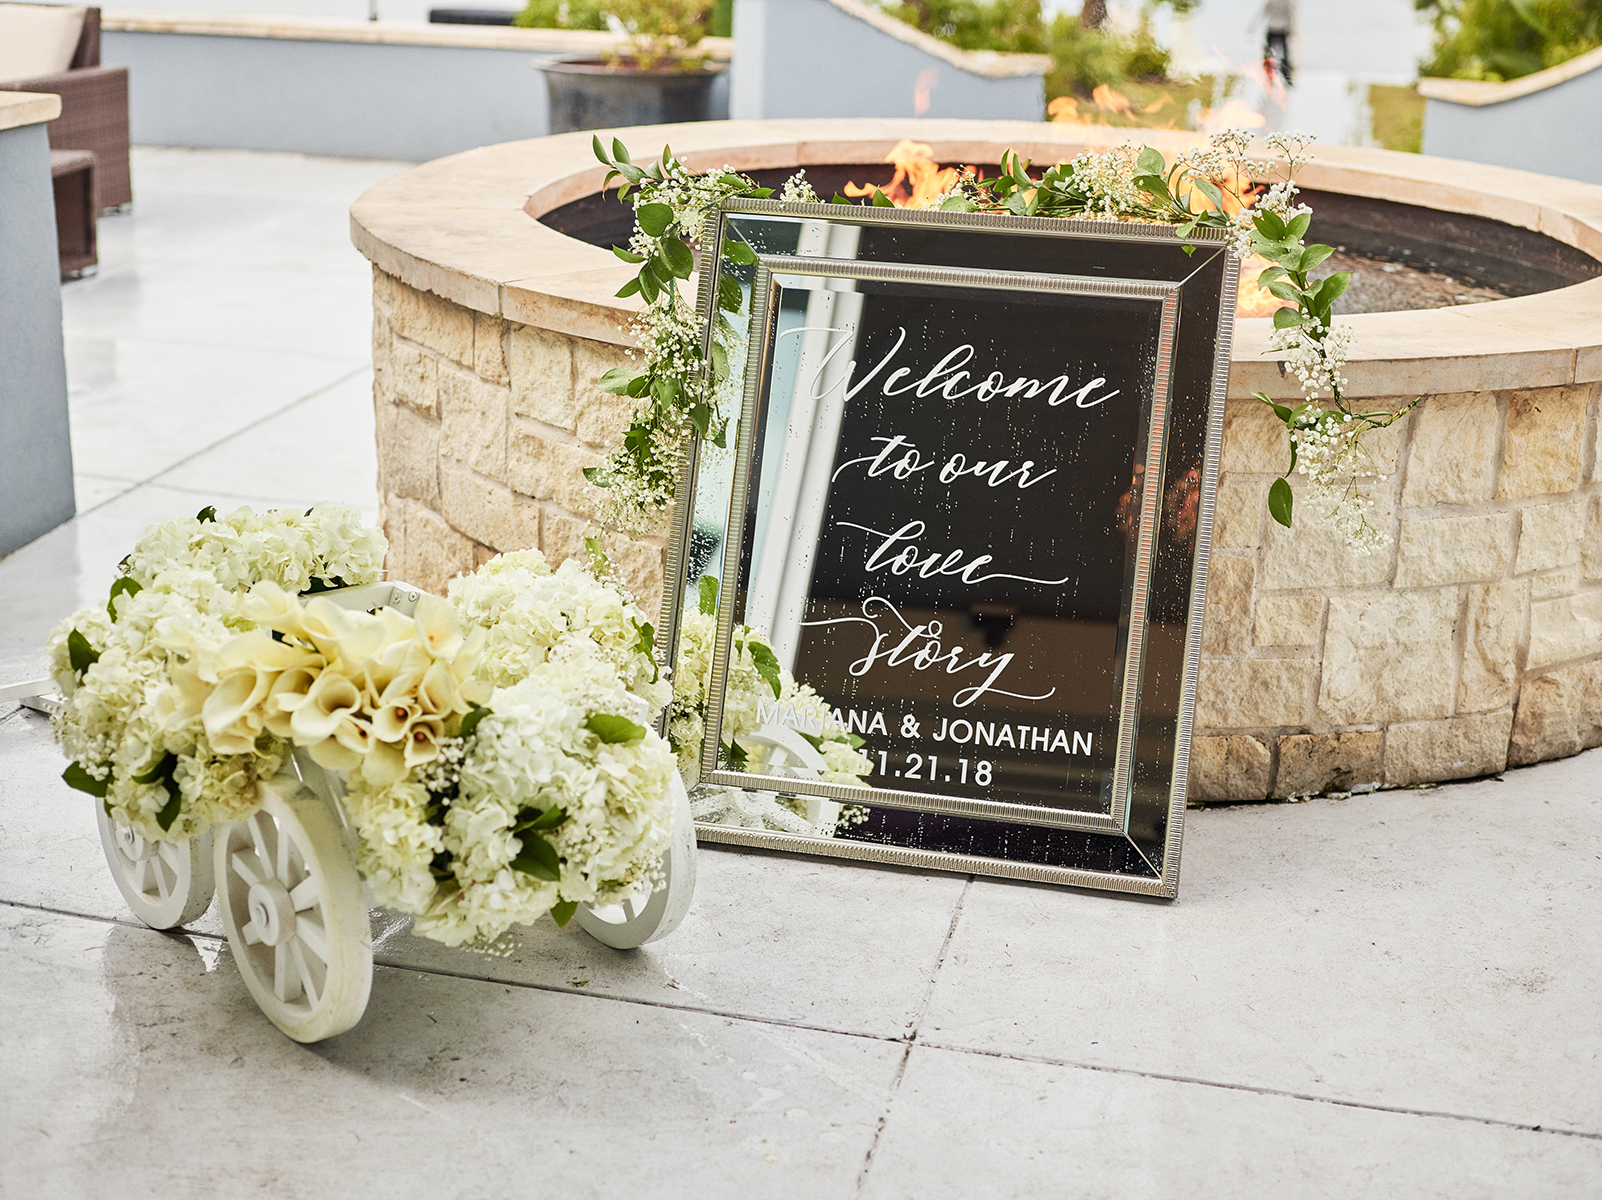 cute ideas for outdoor wedding ceremony - signage - mirror, flowers